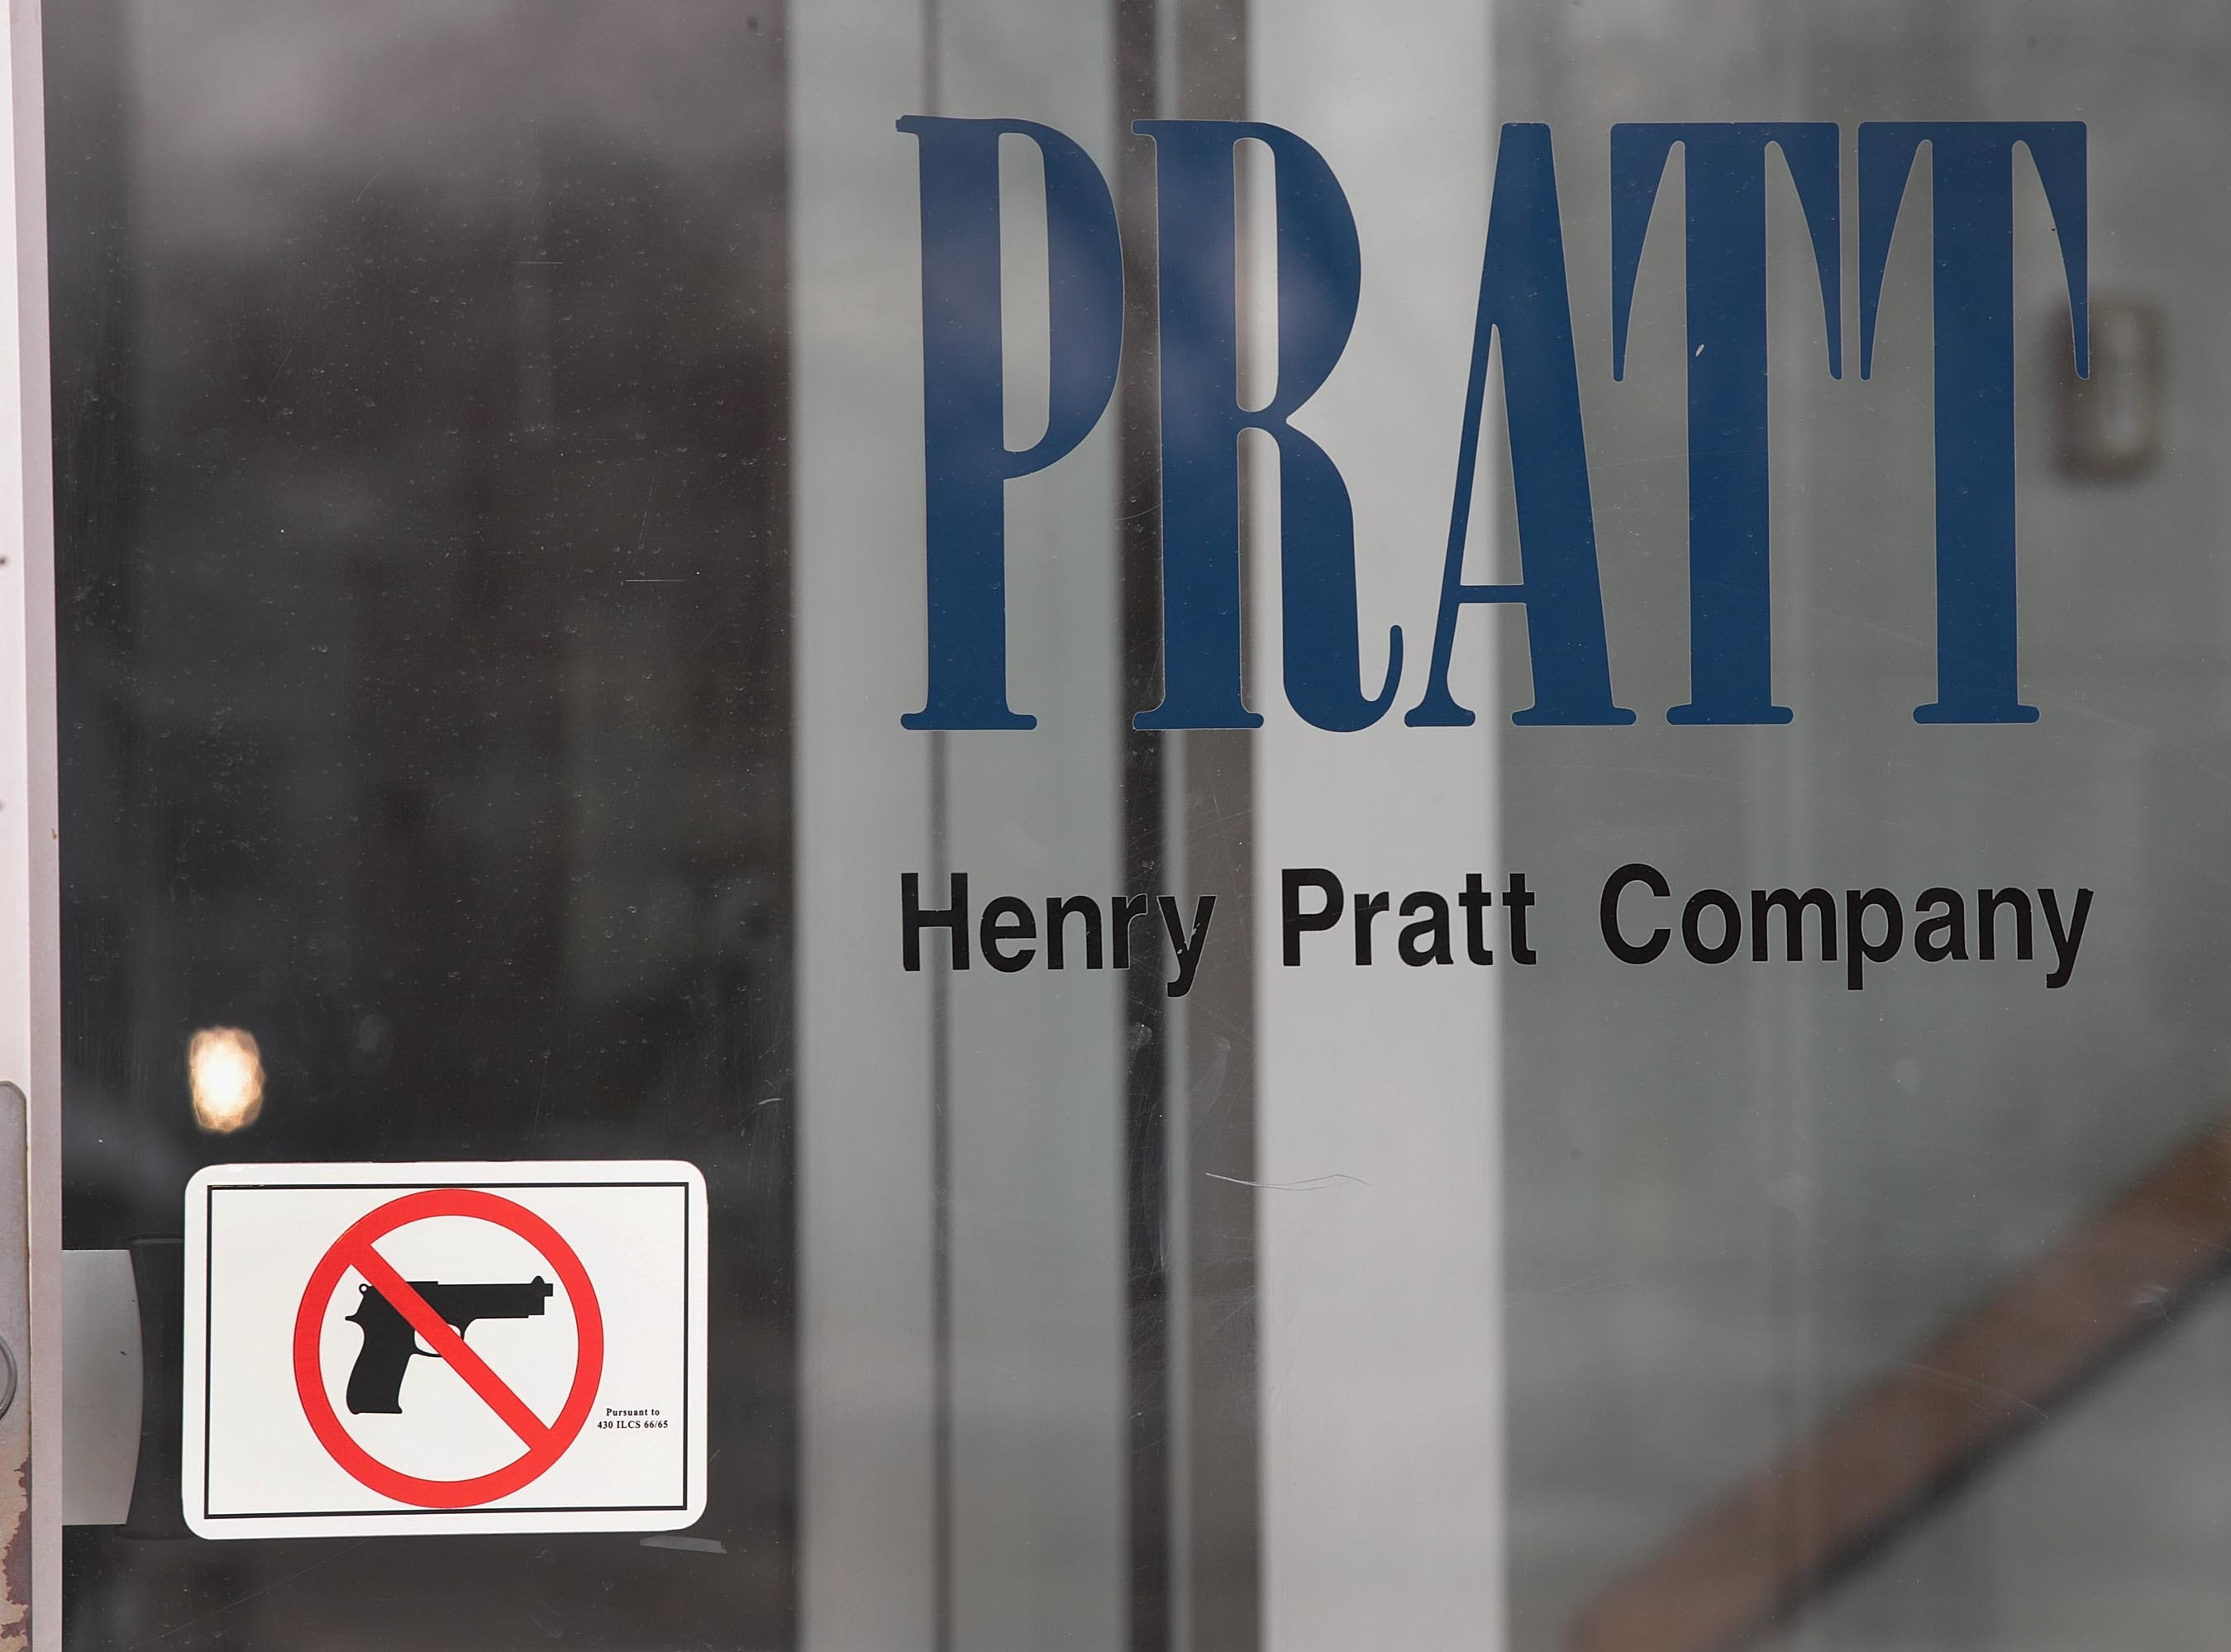 A sign on the front door of the Henry Pratt Company office shows that guns are not allowed in the building on Feb. 16, 2019 in Aurora, Ill. Yesterday five people were killed and 5 police officers were wounded by a former employee armed with a handgun in the company's manufacturing plant. The gunman, who was killed by police, has been identified as Gary Martin.